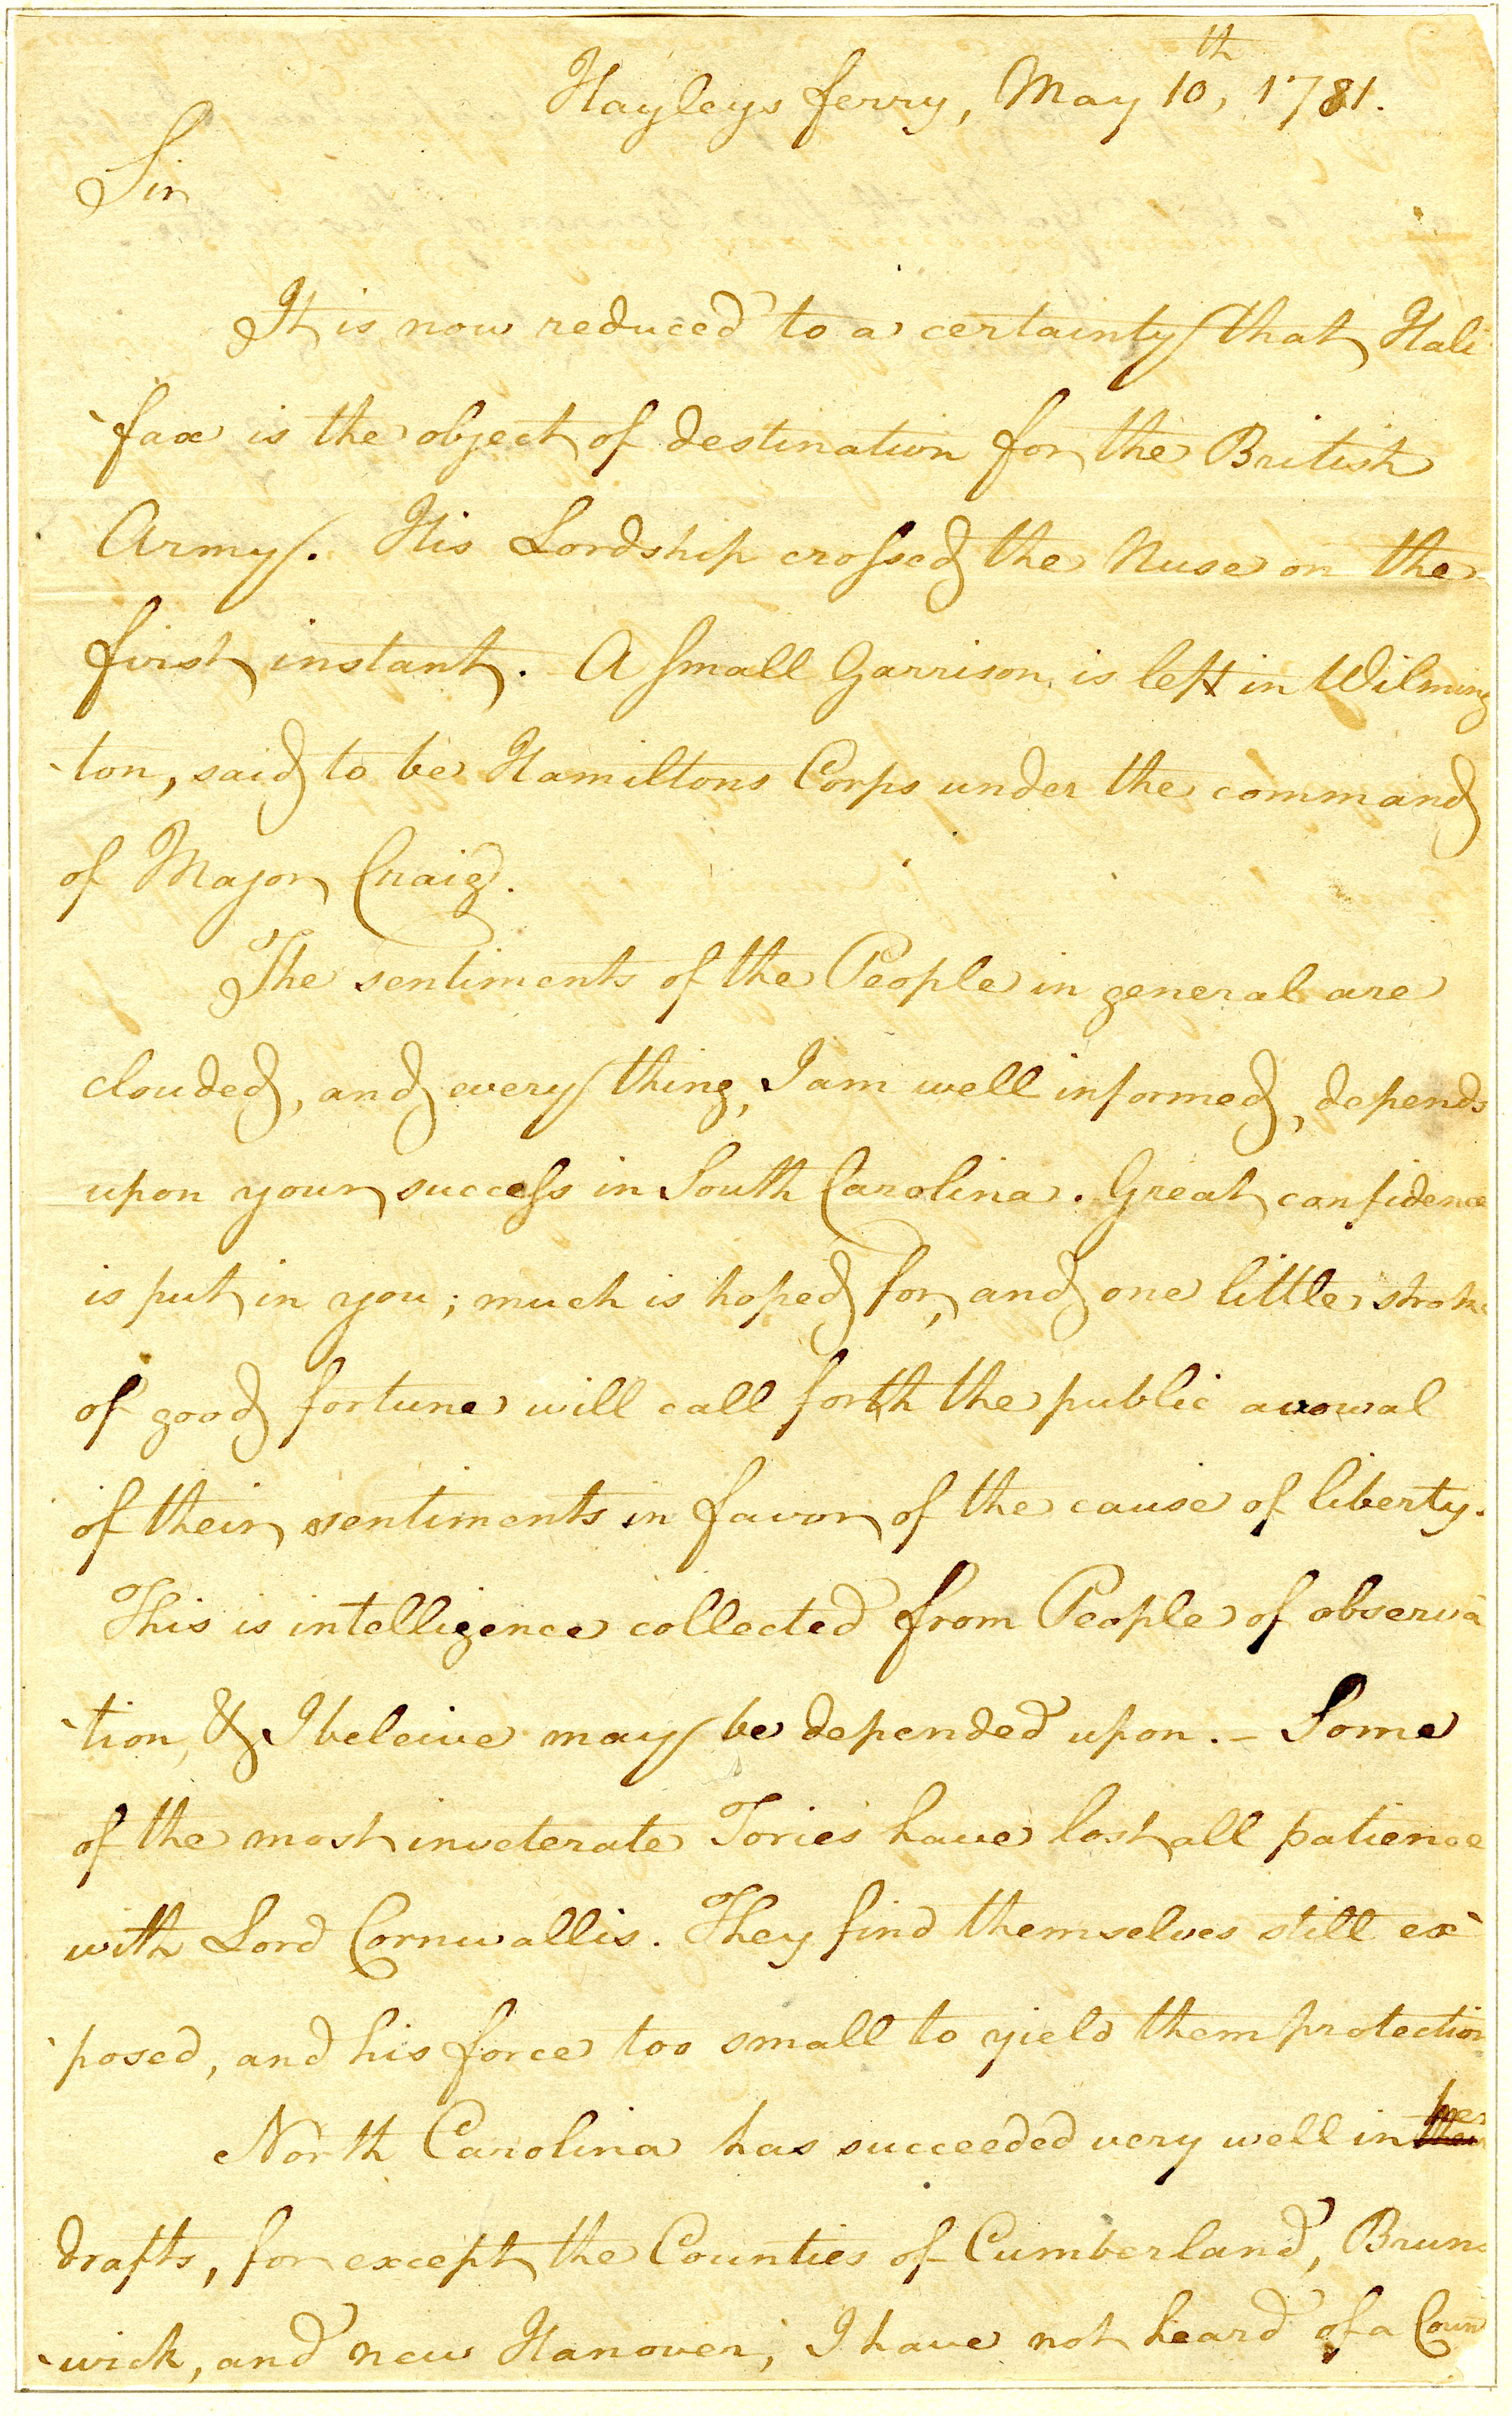 Letter from William Pierce, Jr. to Nathanael Greene